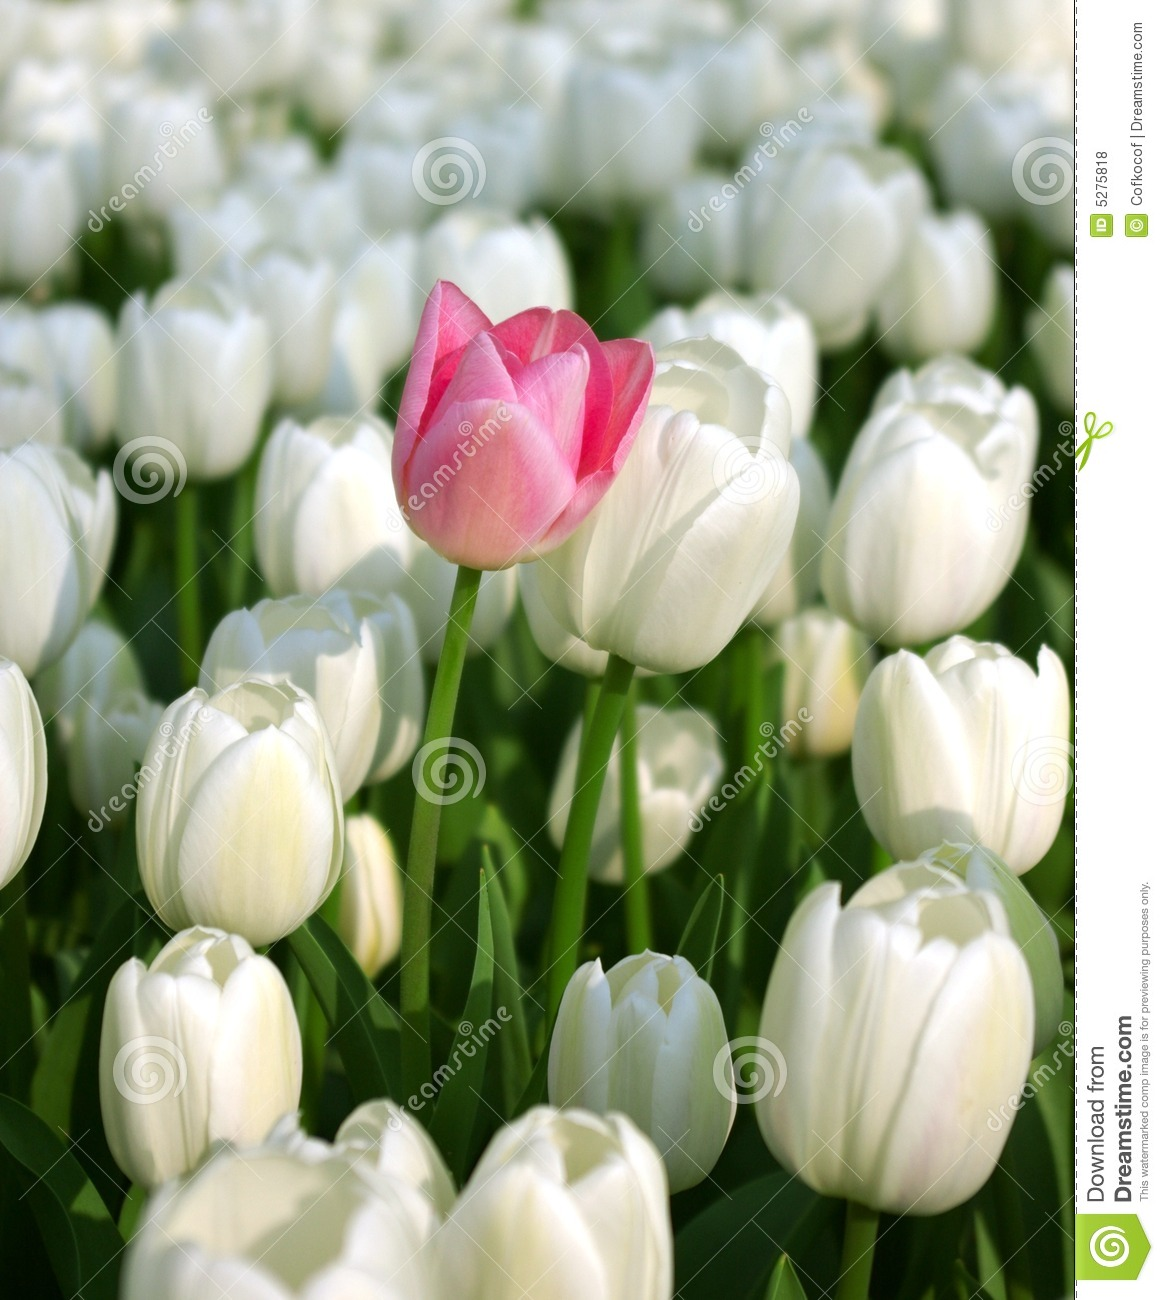 Pink tulip in a sea of white tulips royalty free stock photos pink tulip tulips white dhlflorist Image collections